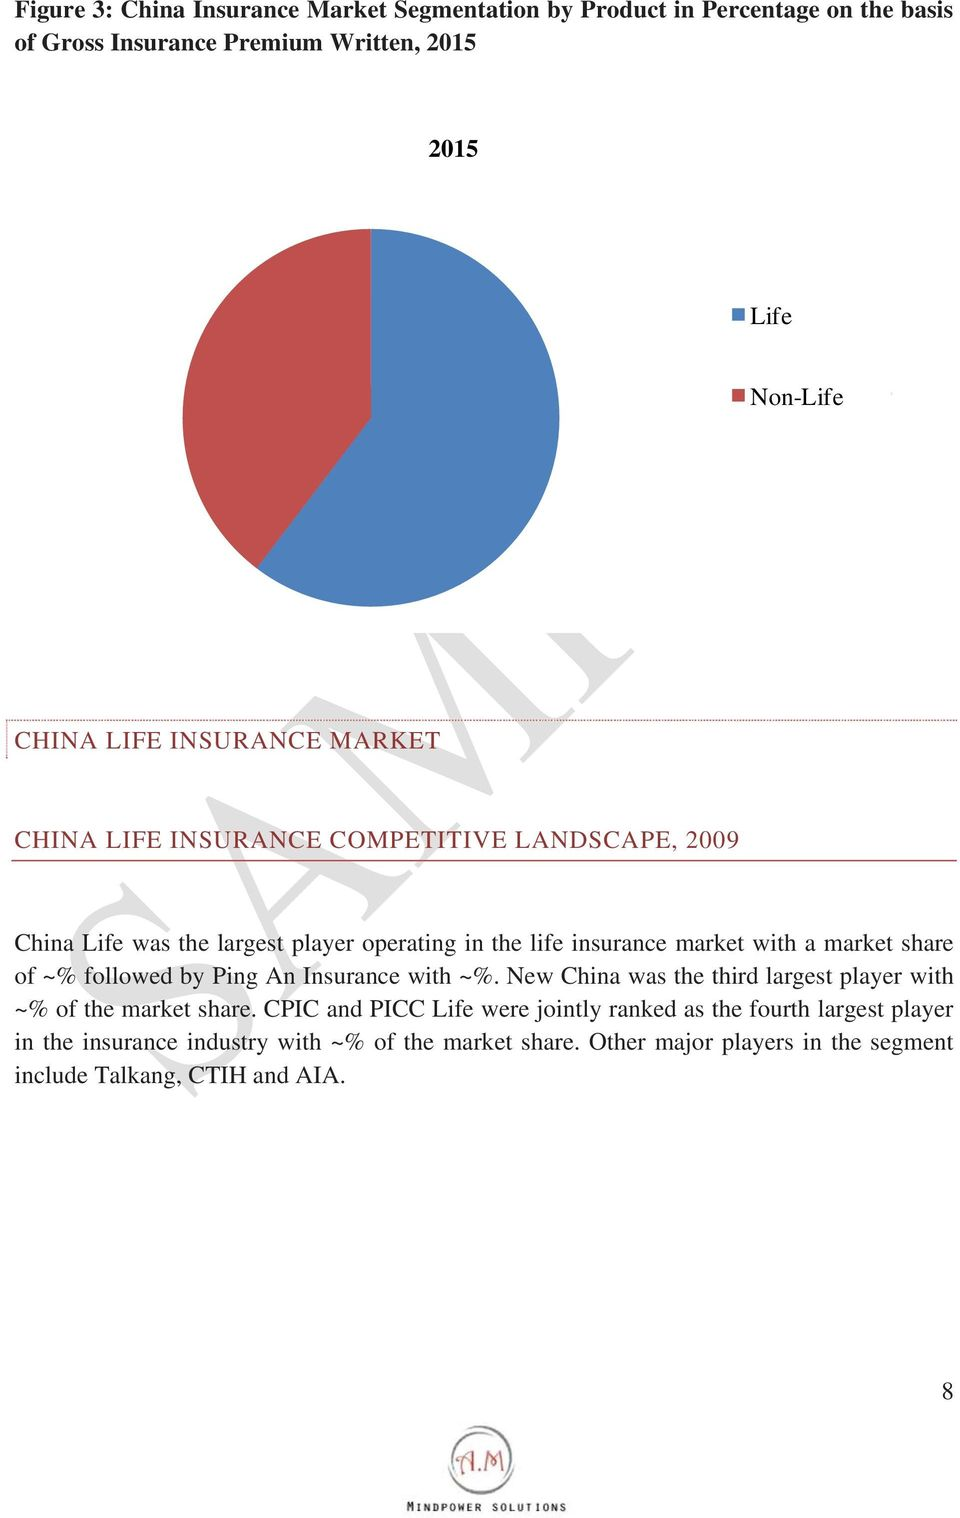 share of ~% followed by Ping An Insurance with ~%. New China was the third largest player with ~% of the market share.